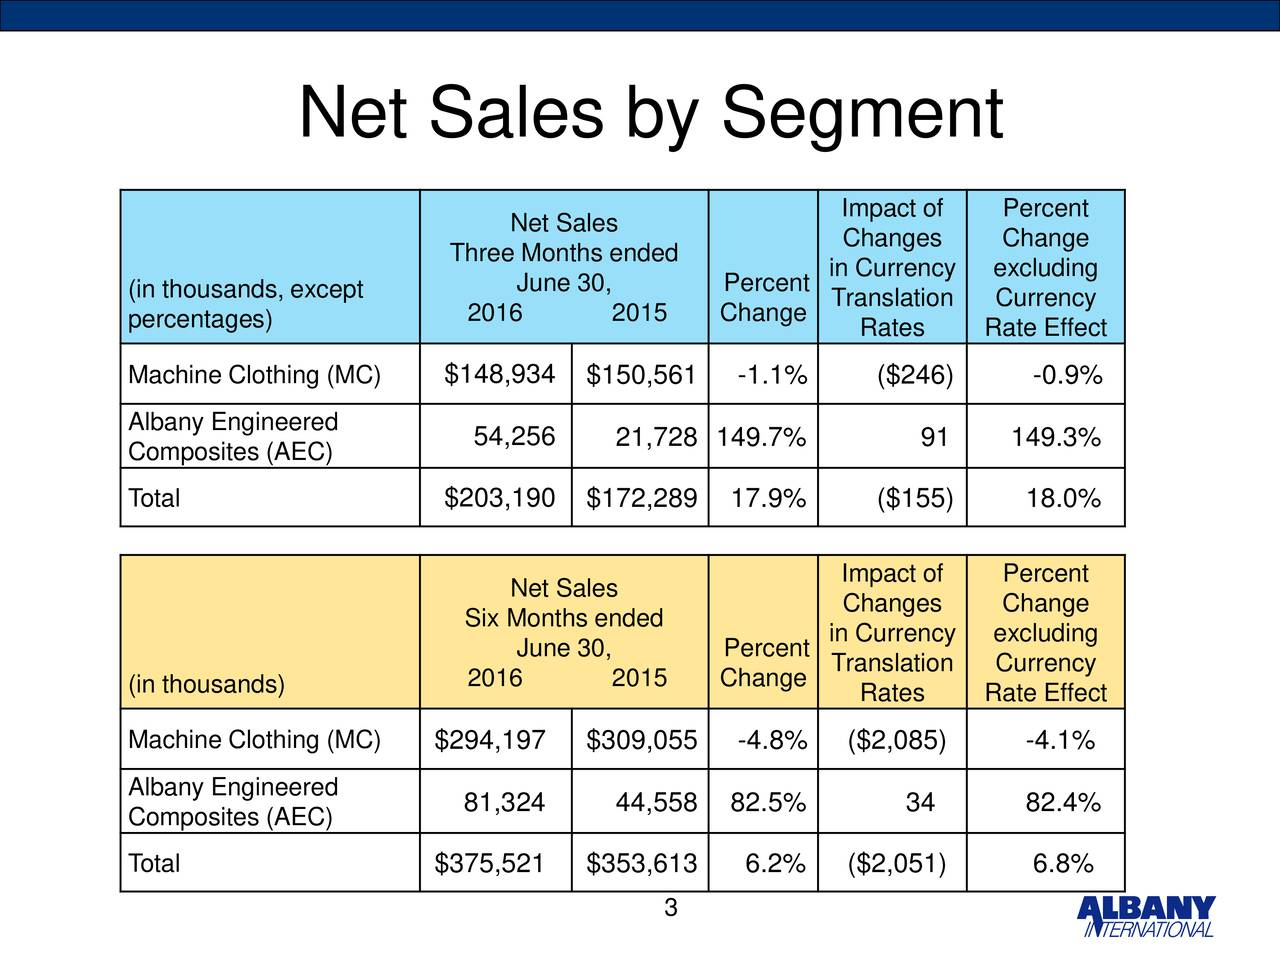 Impact of Percent Net Sales Changes Change Three Months ended (in thousands, except June 30, Percent in Currency excluding 2016 2015 Change Translation Currency percentages) Rates Rate Effect Machine Clothing (MC) $148,934 $150,561 -1.1% ($246) -0.9% Albany Engineered 54,256 21,728 149.7% 91 149.3% Composites (AEC) Total $203,190 $172,289 17.9% ($155) 18.0% Impact of Percent Net Sales Six Months ended Changes Change June 30, Percent in Currency excluding 2016 2015 Change Translation Currency (in thousands) Rates Rate Effect Machine Clothing (MC) $294,197 $309,055 -4.8% ($2,085) -4.1% Albany Engineered 81,324 44,558 82.5% 34 82.4% Composites (AEC) Total $375,521 $353,613 6.2% ($2,051) 6.8% 3